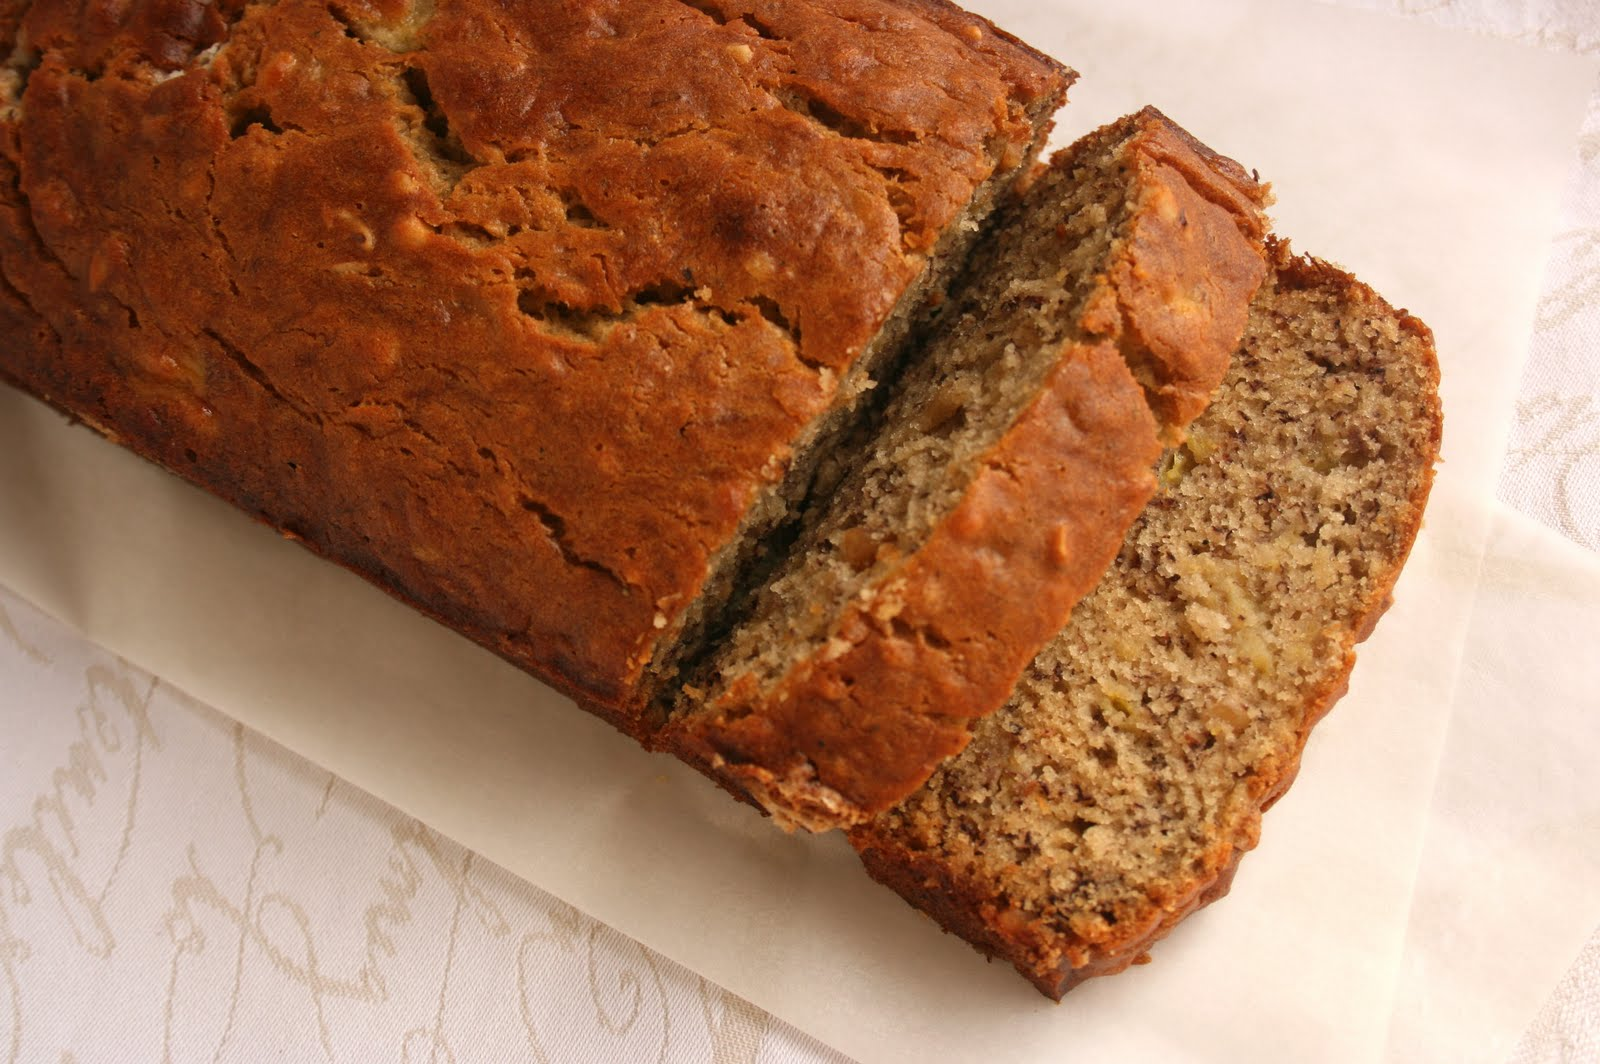 ... bread banana coconut bread jacked up banana bread bourbon banana bread